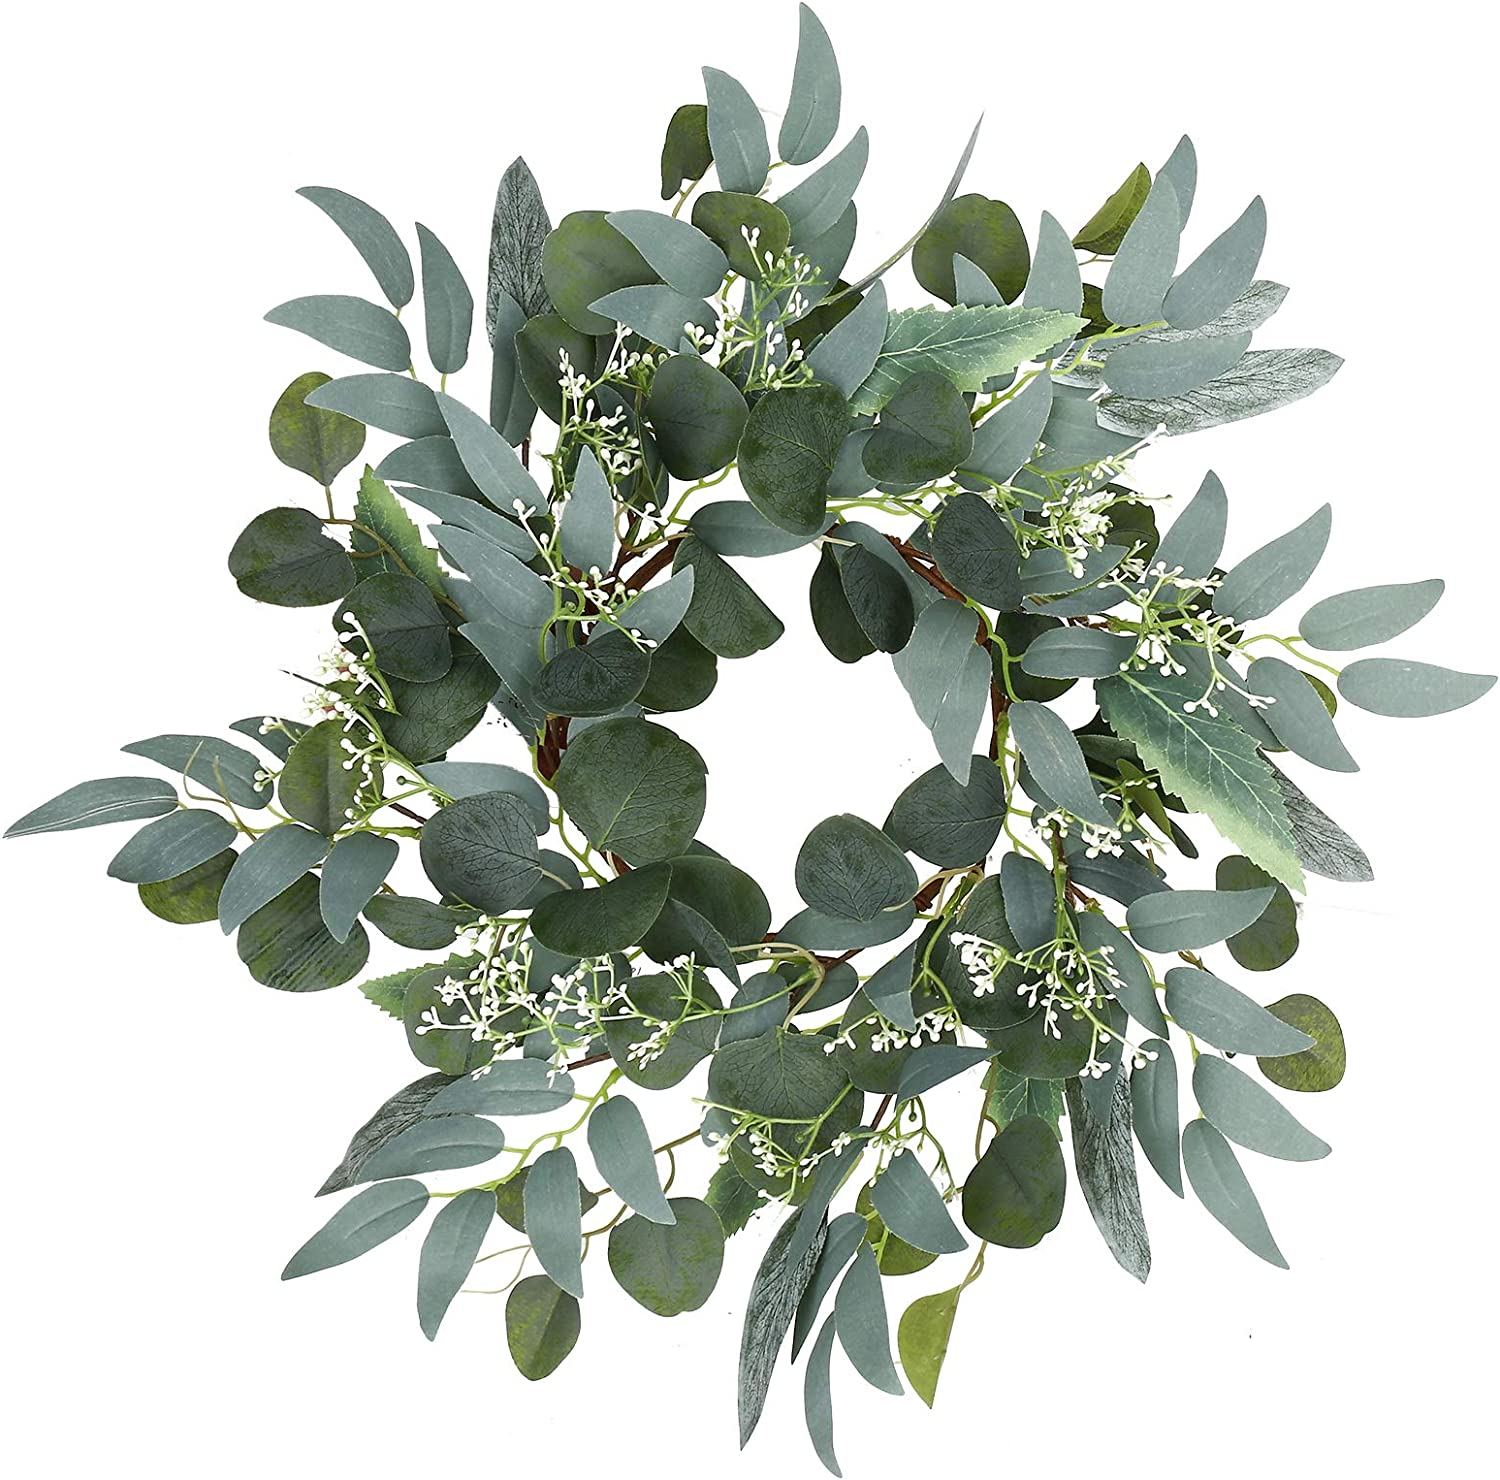 Artificial Green Eucalyptus Wreath,15 inches Greenery Wreath with Clusters of White Flowers Mini Spring/Summer Wreath for Front Door Wall Window Decor